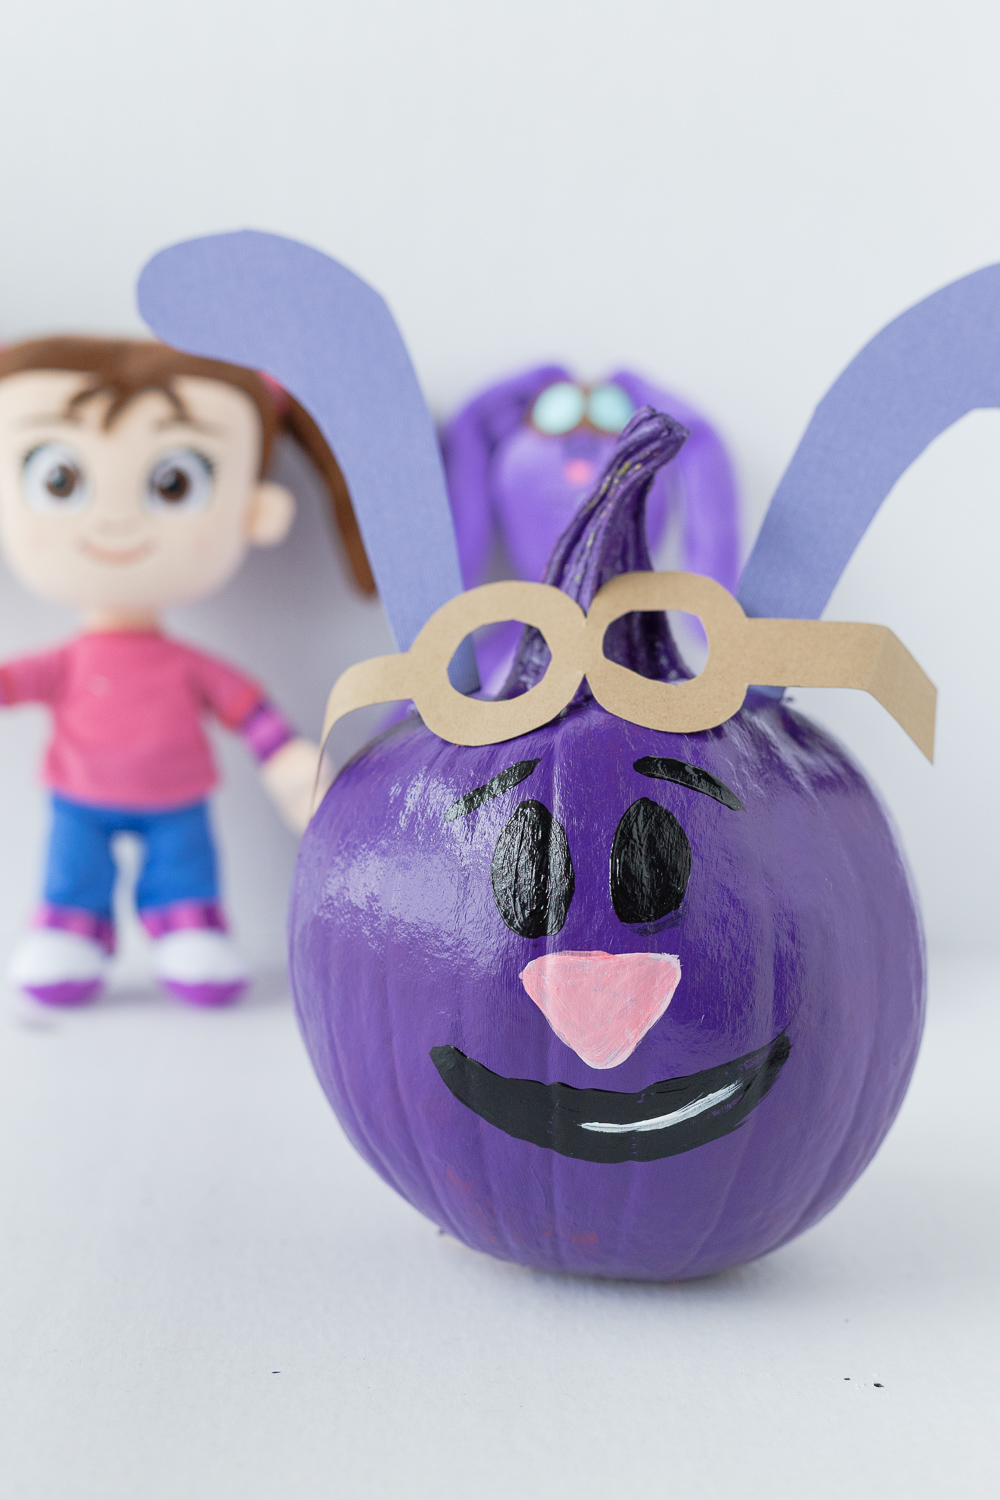 Kate & Mim Mim Pumpkin: a fun painted Mim Mim pumpkin the kids can enjoy!